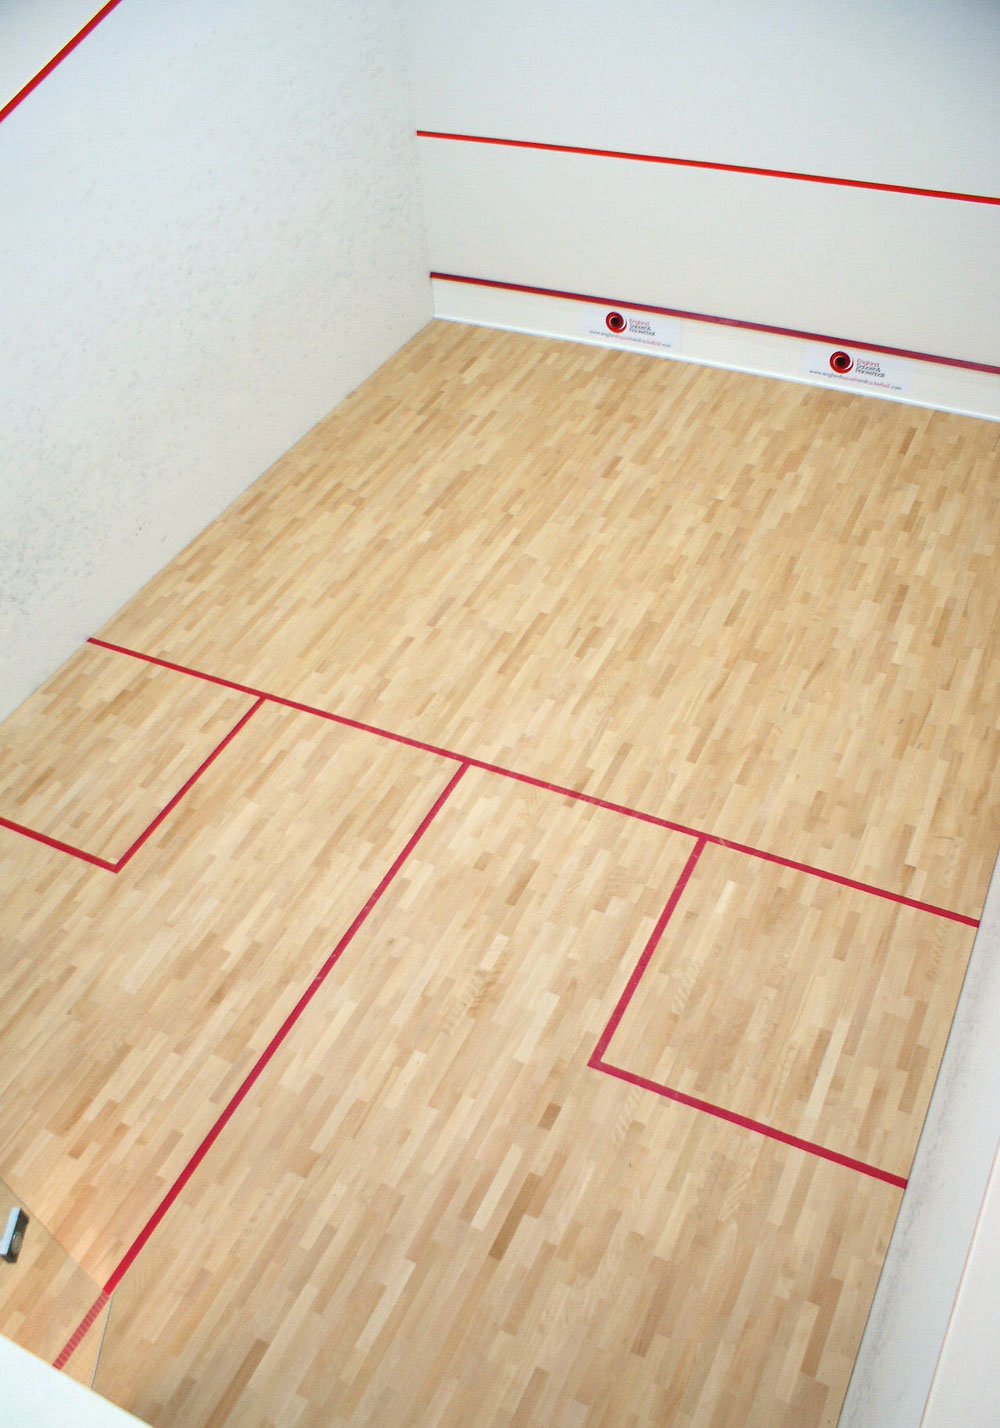 Squash court cleaning squash court maintenance squash for Sports flooring